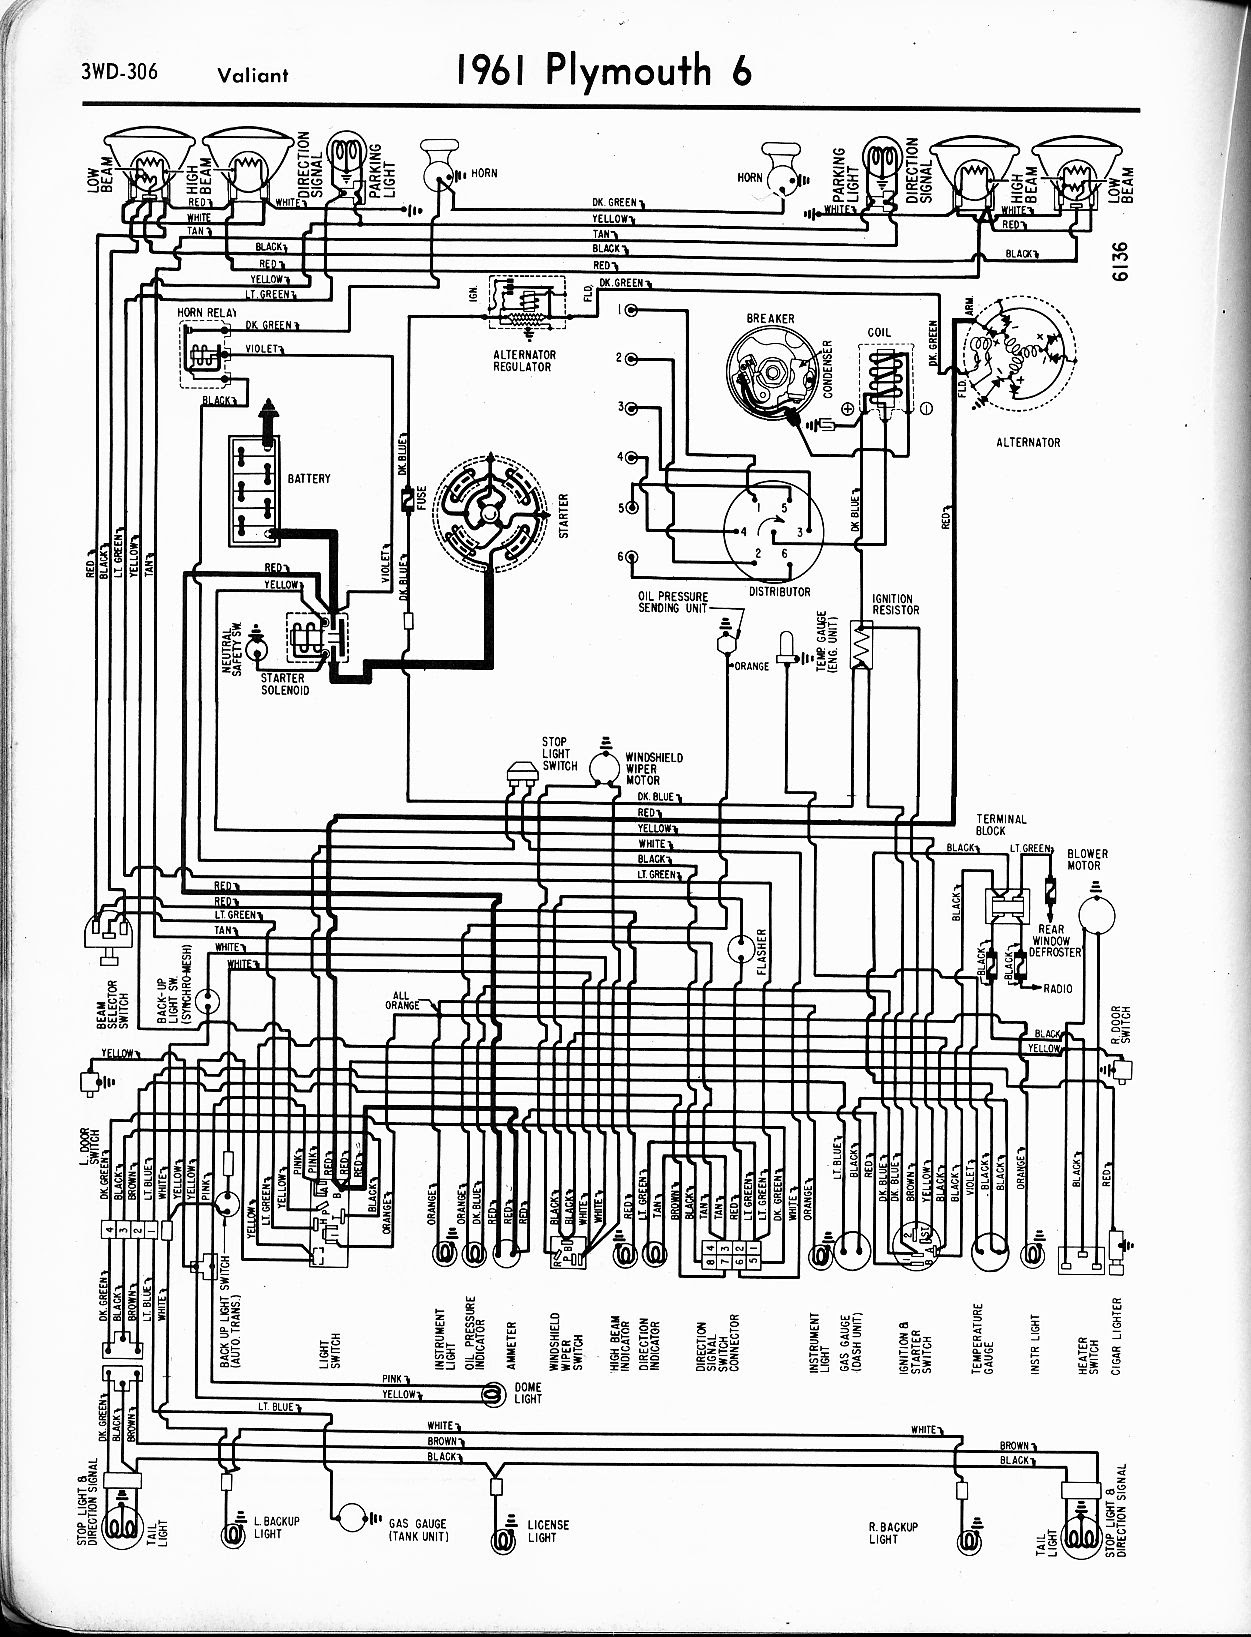 Diagram 1968 Plymouth Wiring Diagram Full Version Hd Quality Wiring Diagram Wirelessdiagramcomfontedel Fontedelleore It